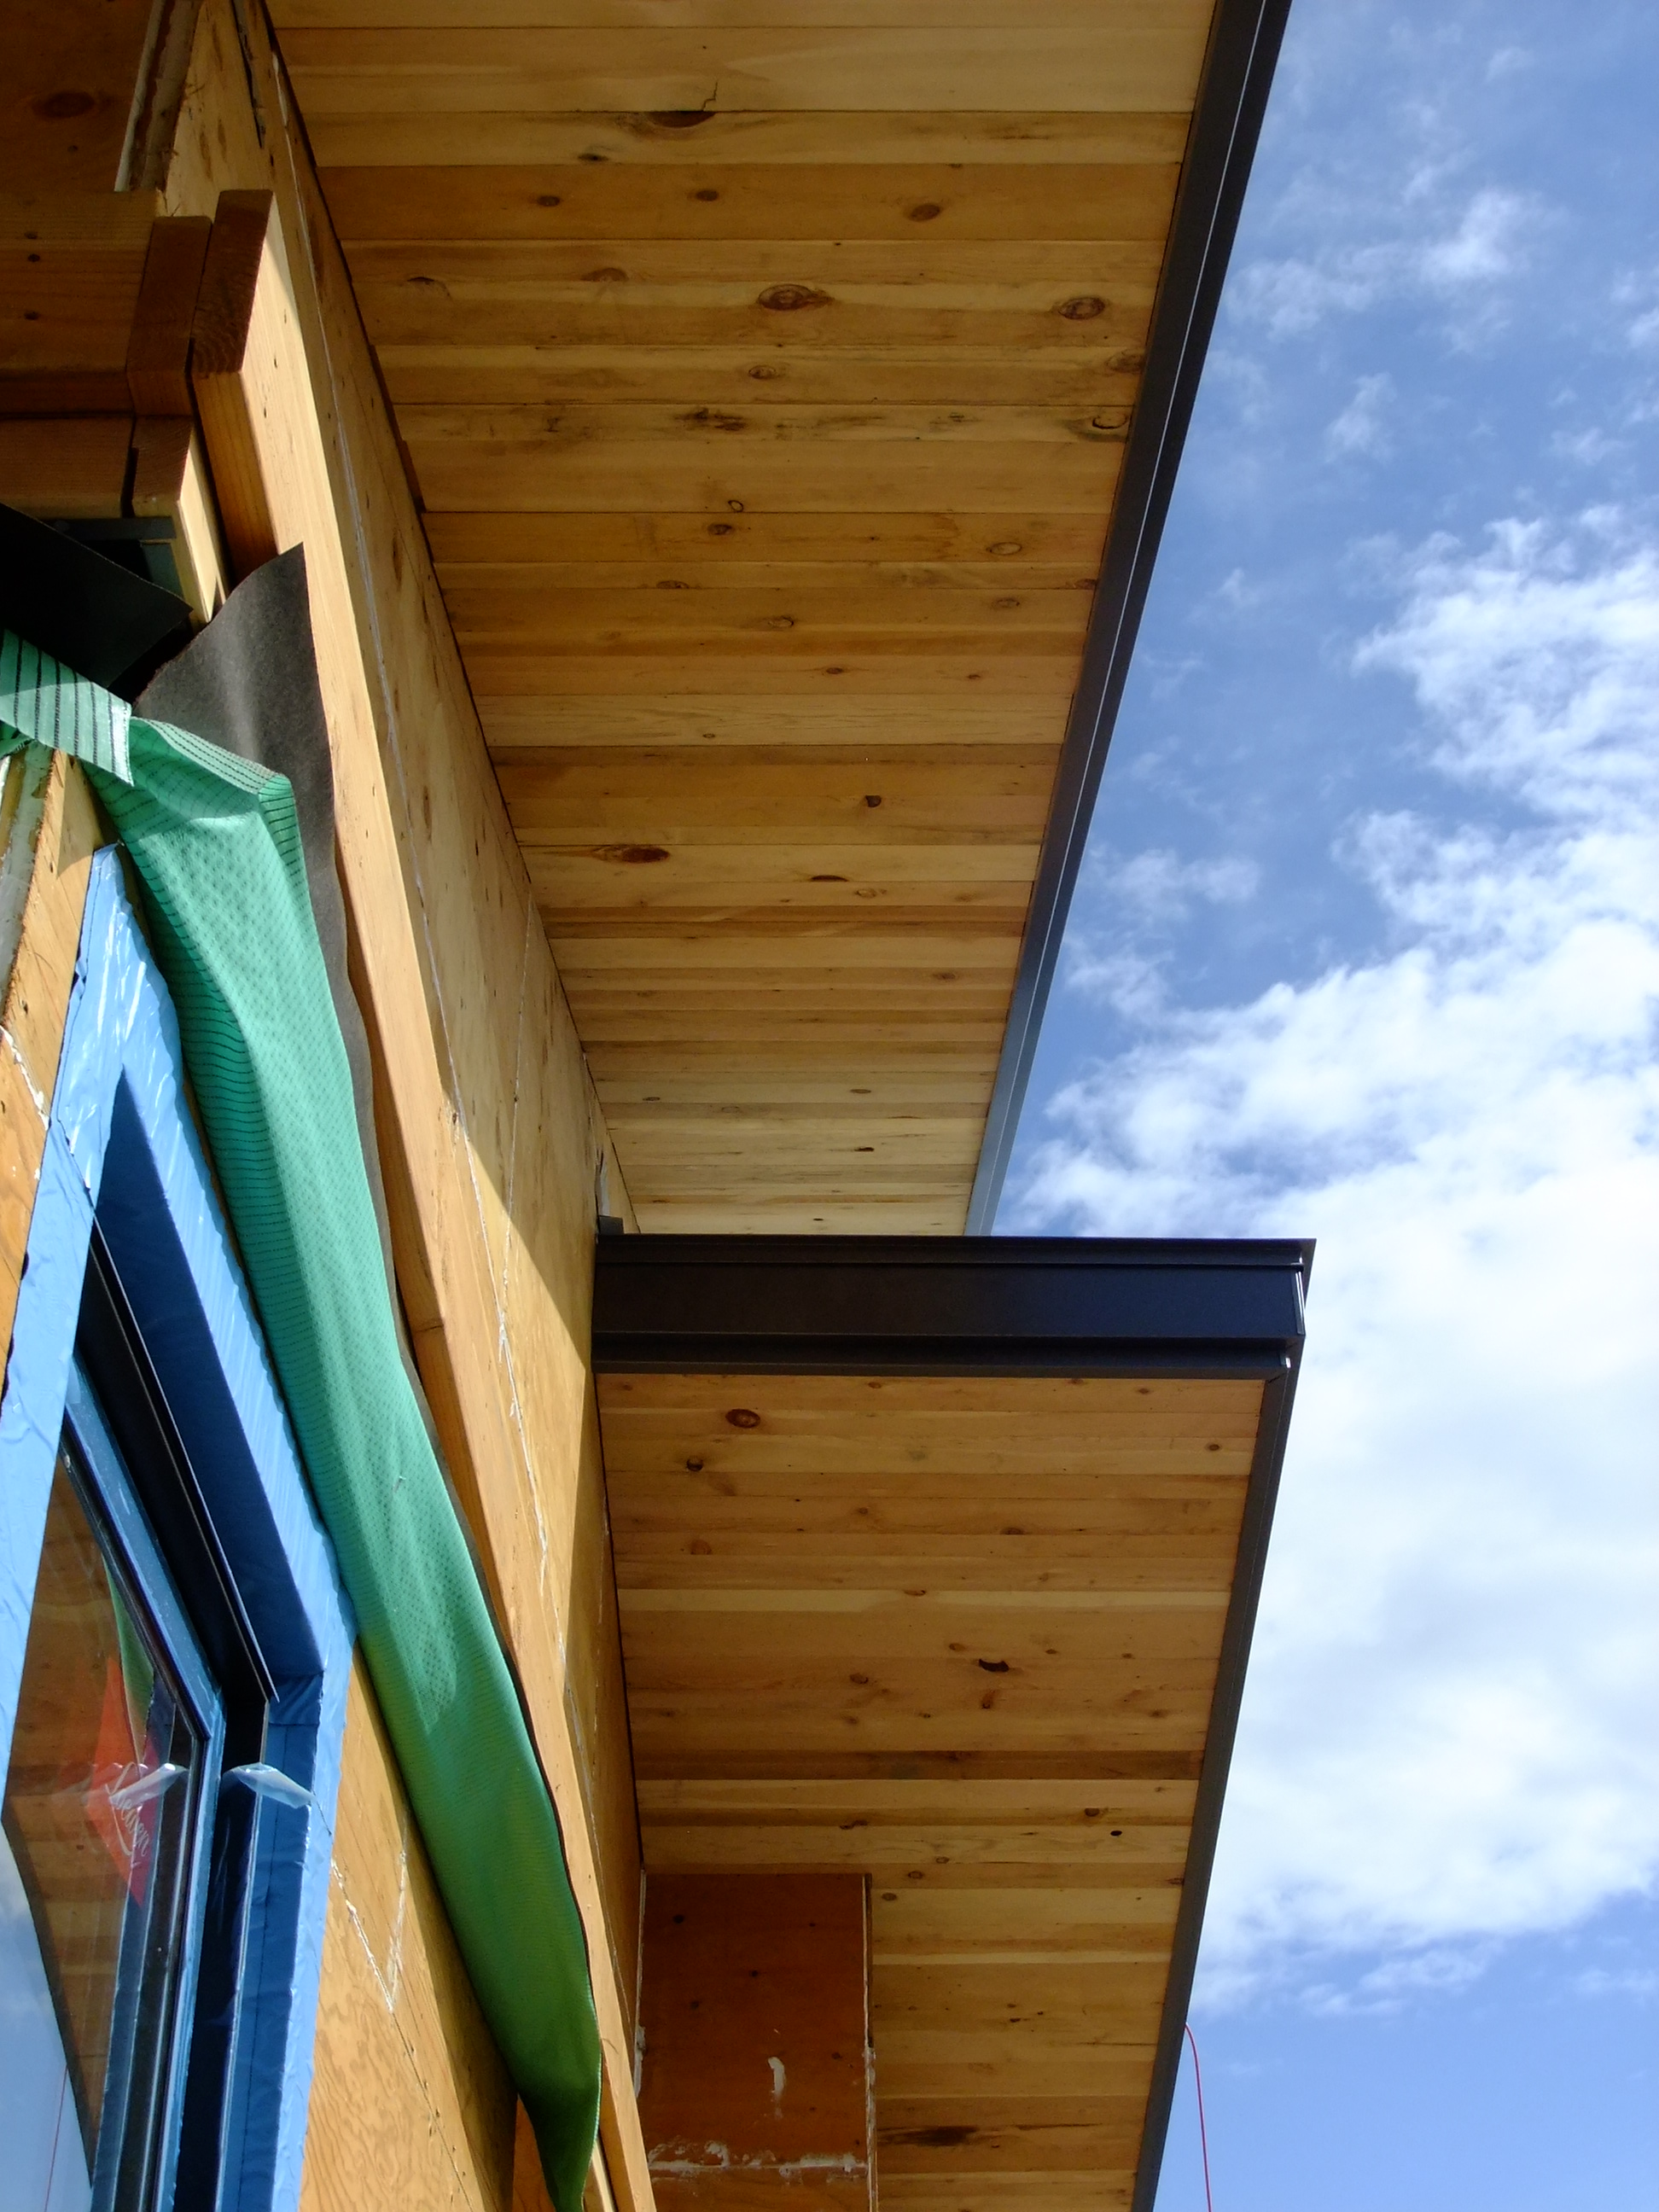 Soffits from reclaimed lumber.